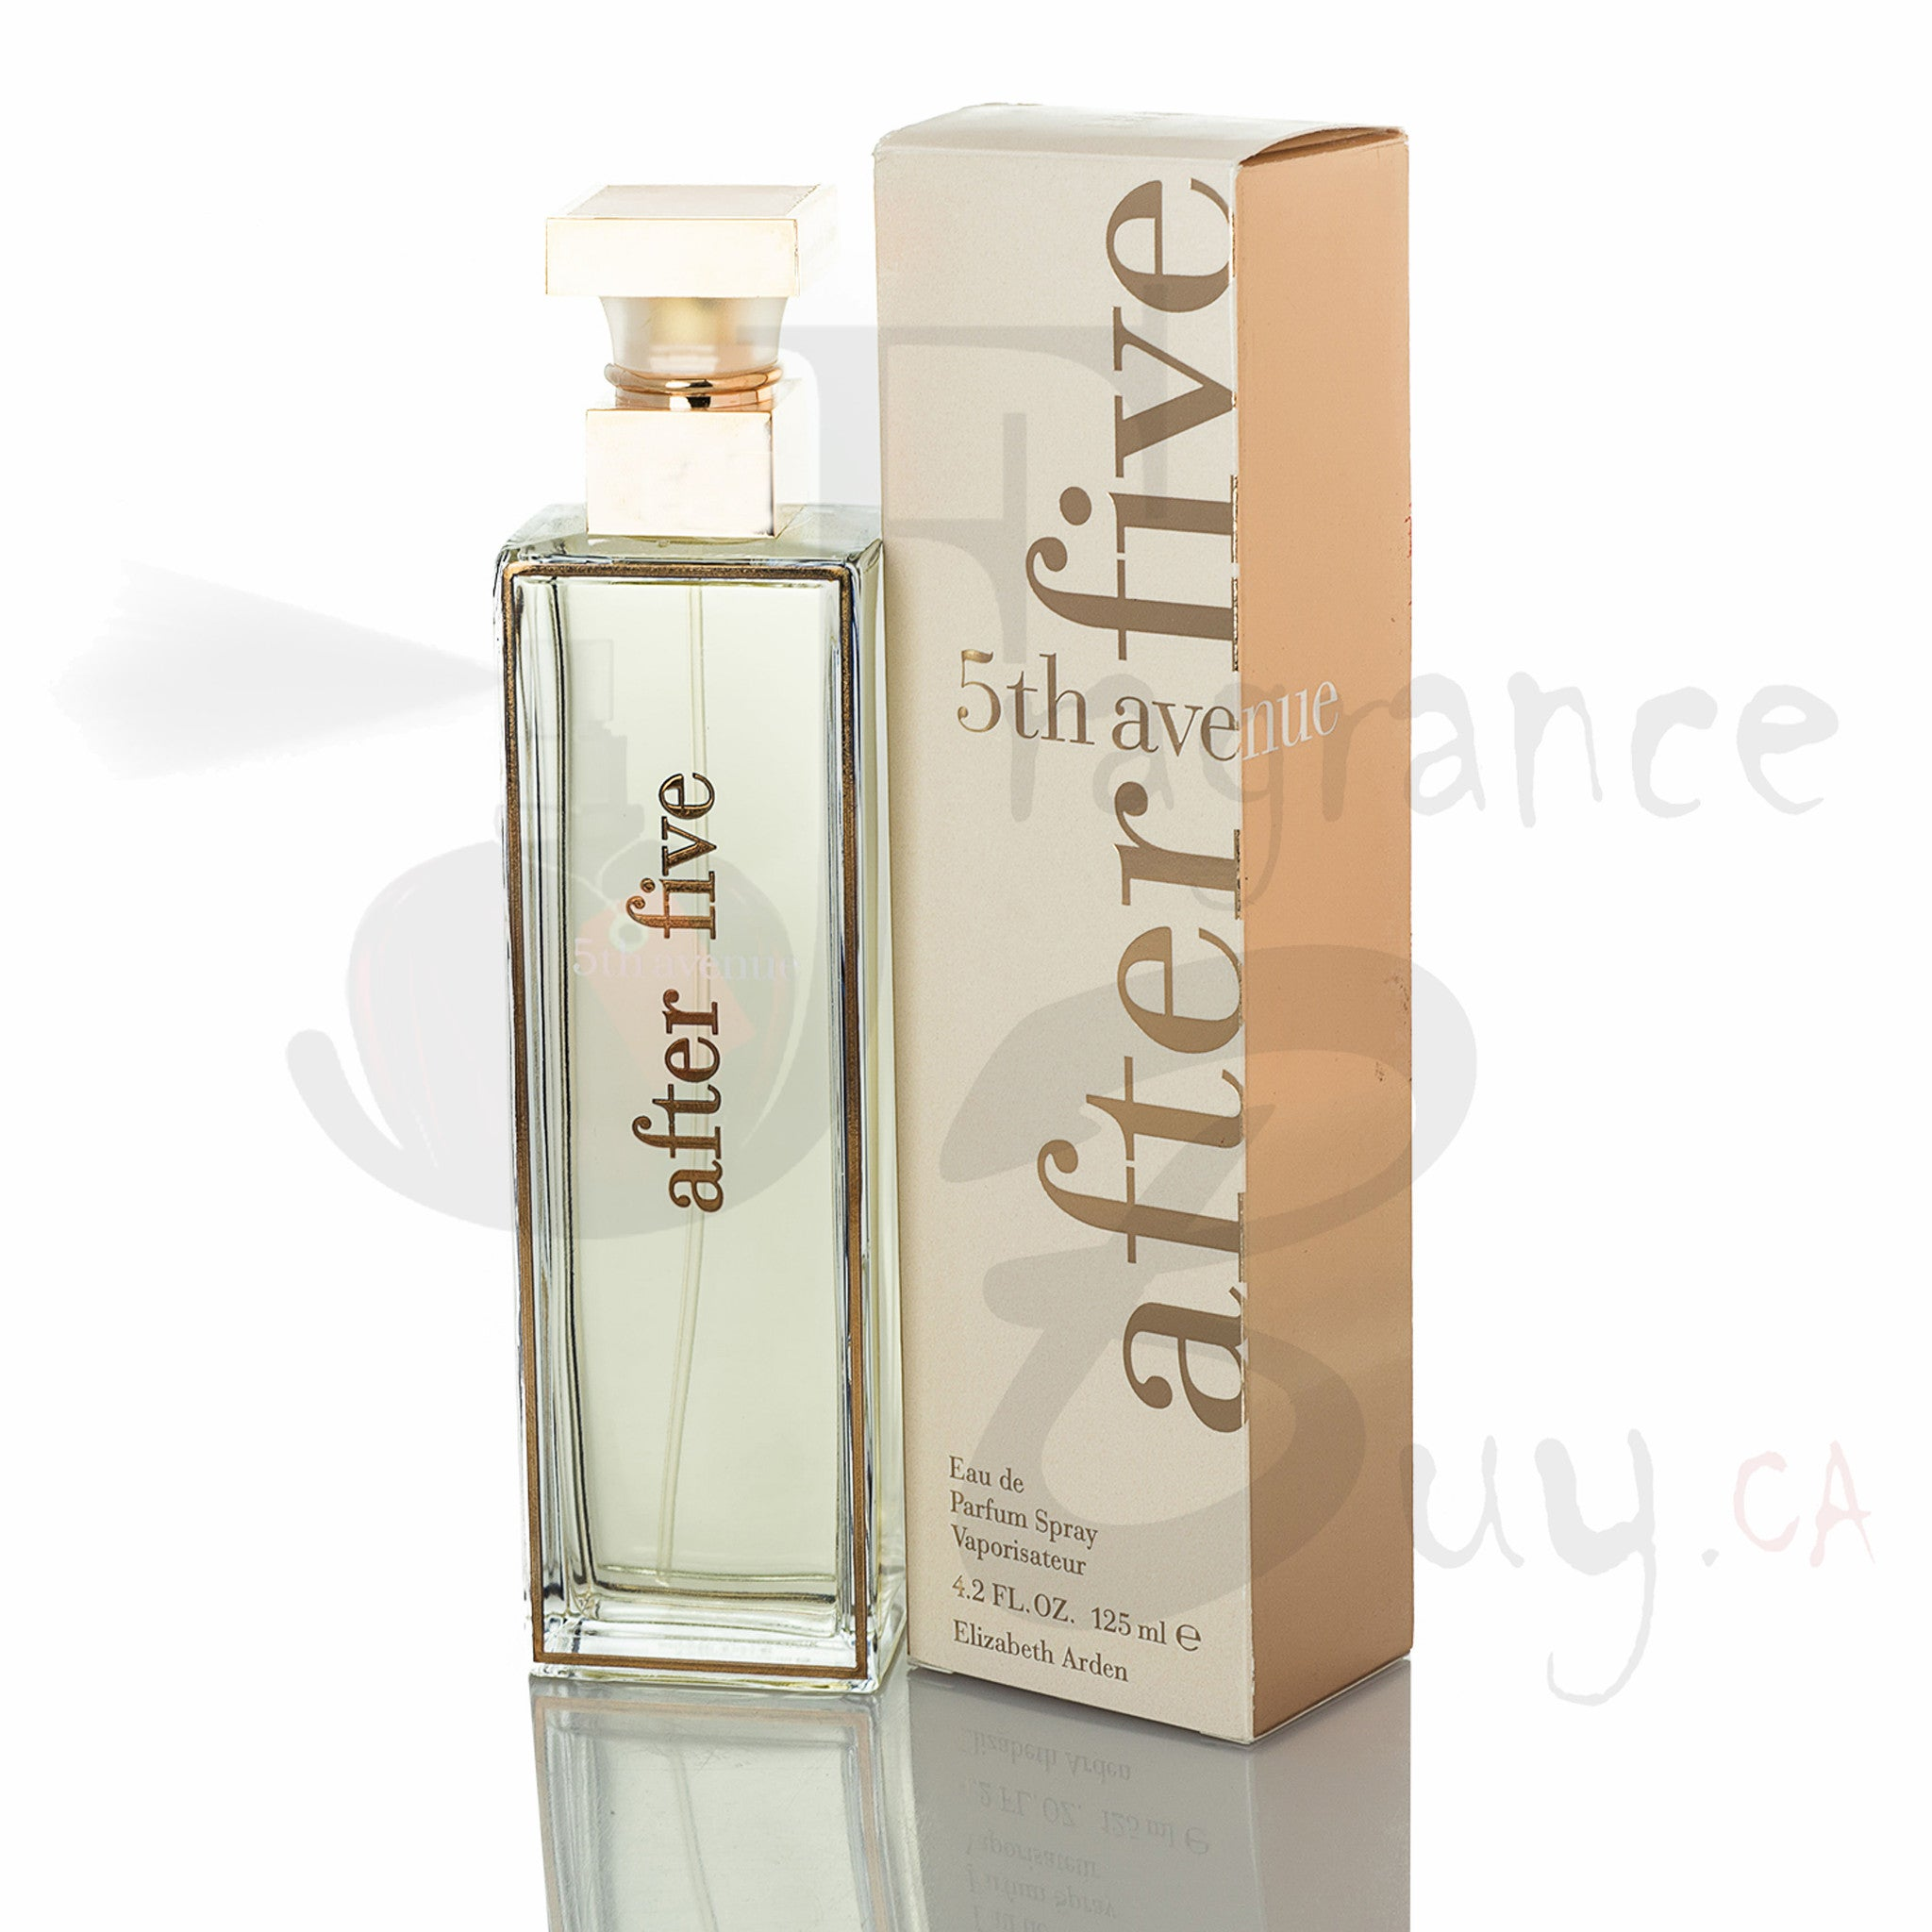 Elizabeth Arden 5th Avenue *After 5* For Woman